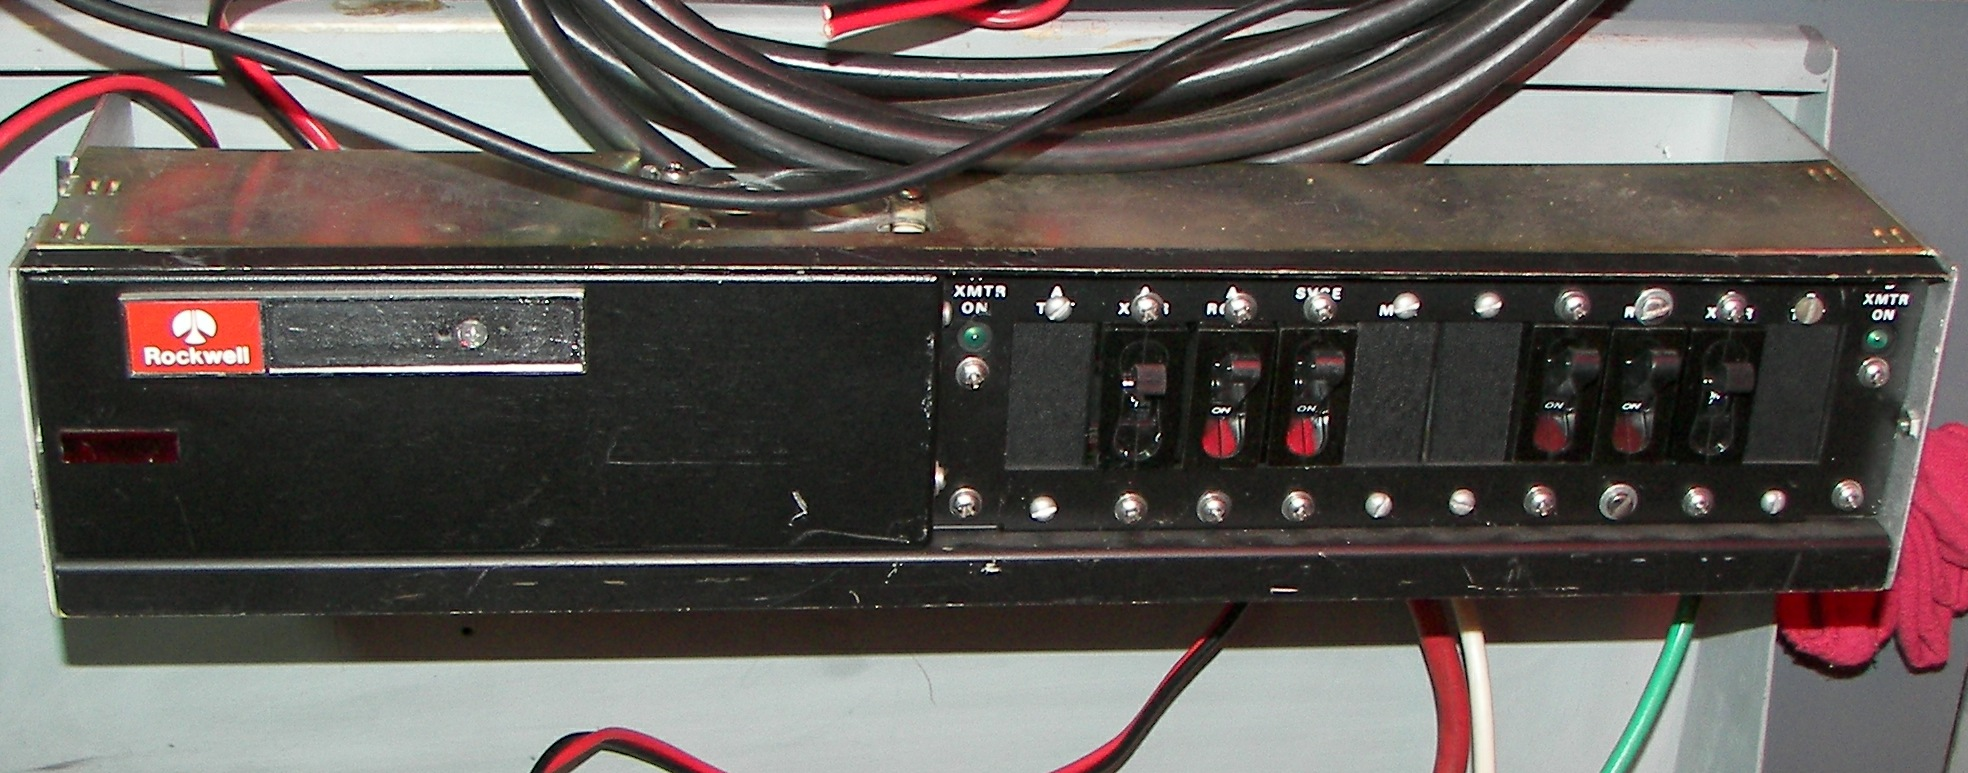 hight resolution of rockwell breaker panel the unit was modified and two 100a dc breakers added one is for the 24vdc line and one is for then 12vdc line